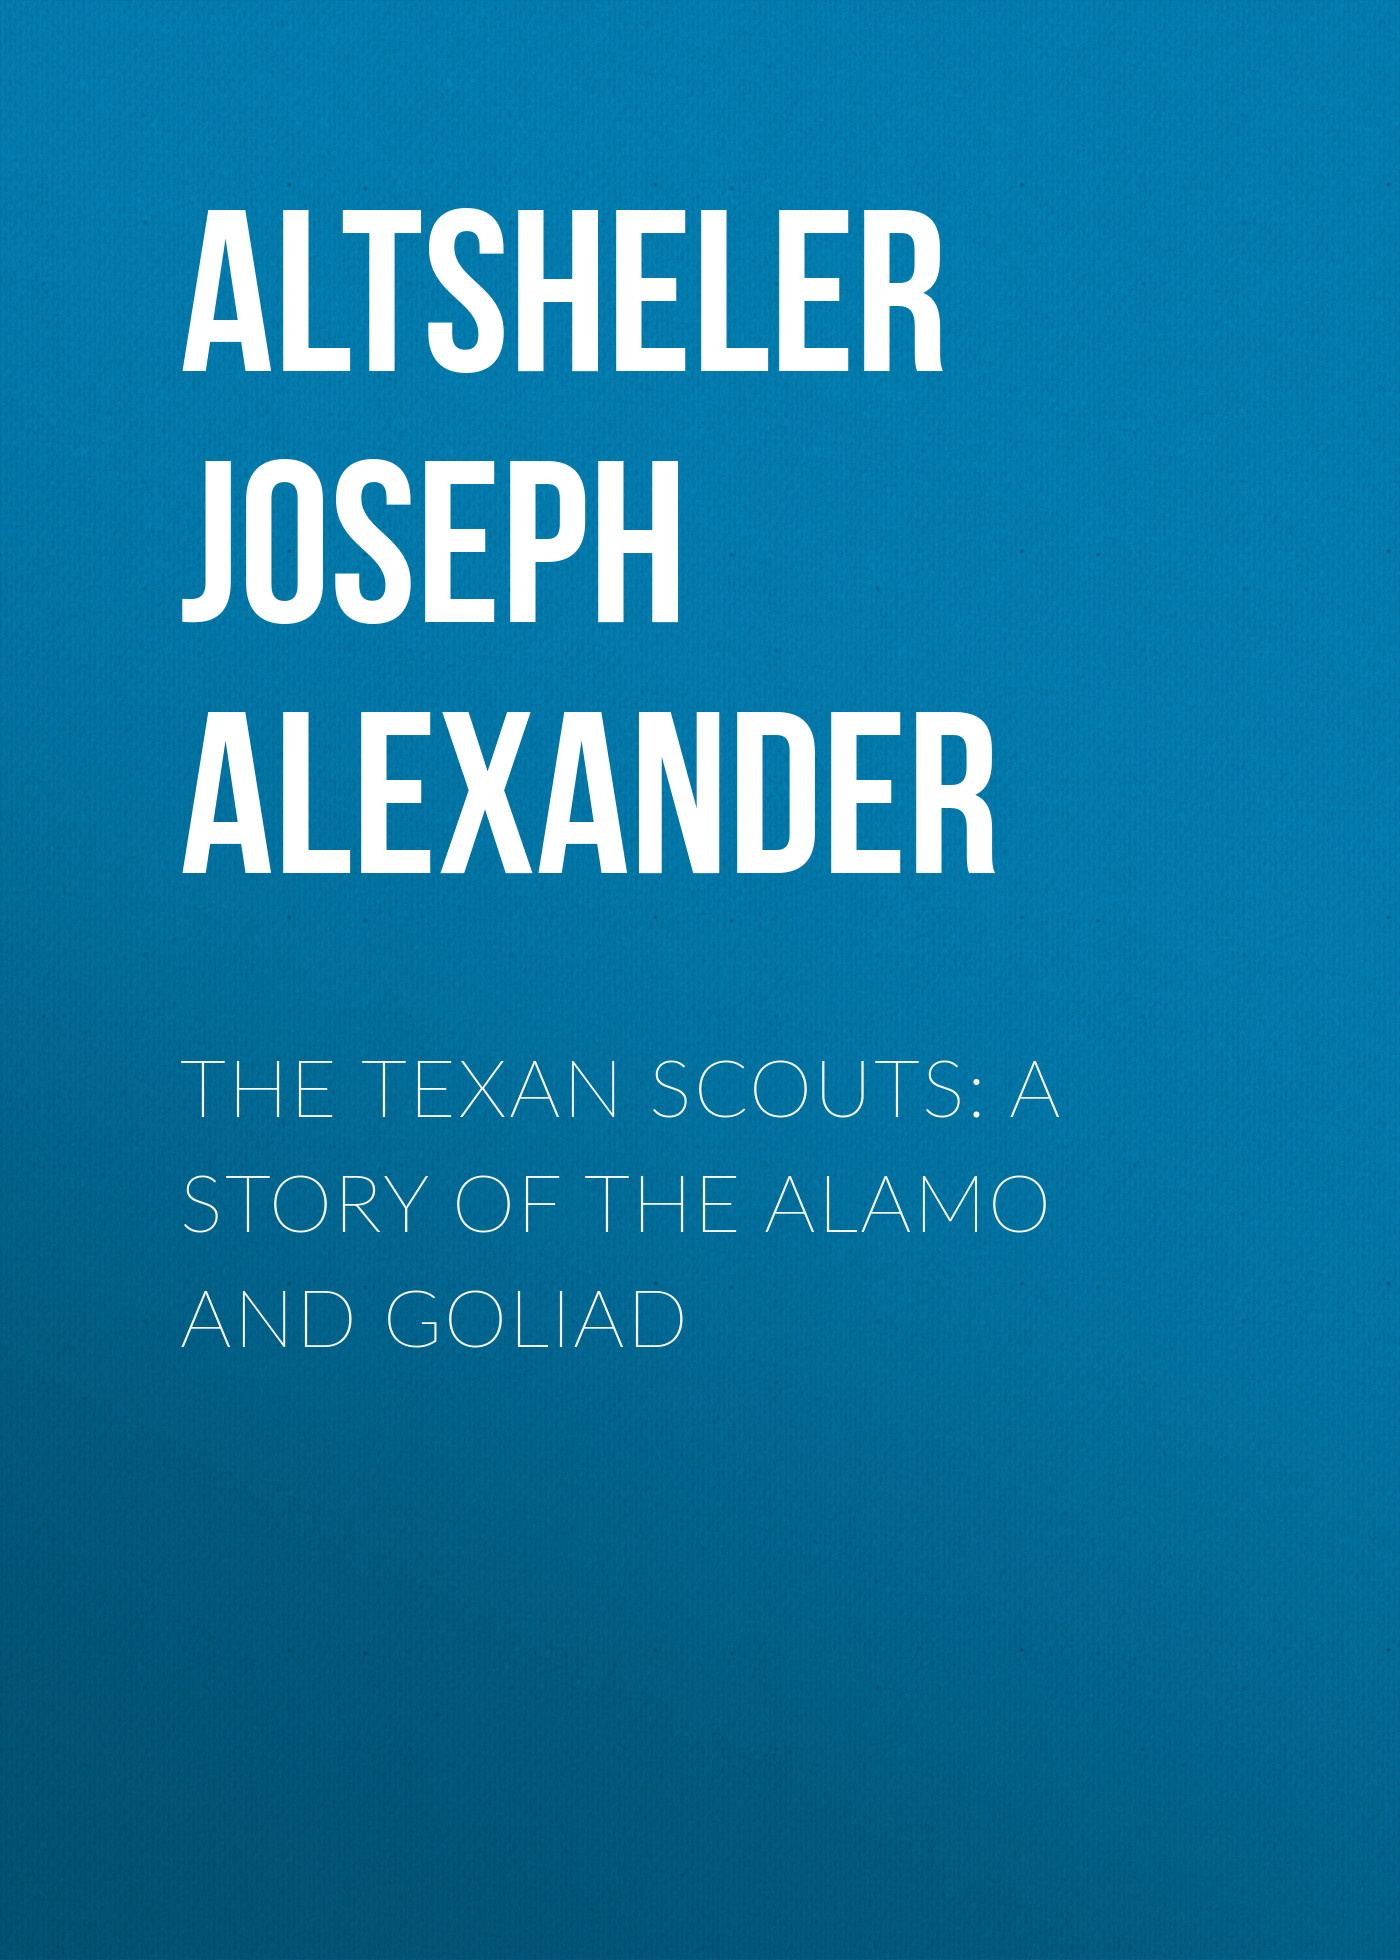 Altsheler Joseph Alexander The Texan Scouts: A Story of the Alamo and Goliad tall dark and texan